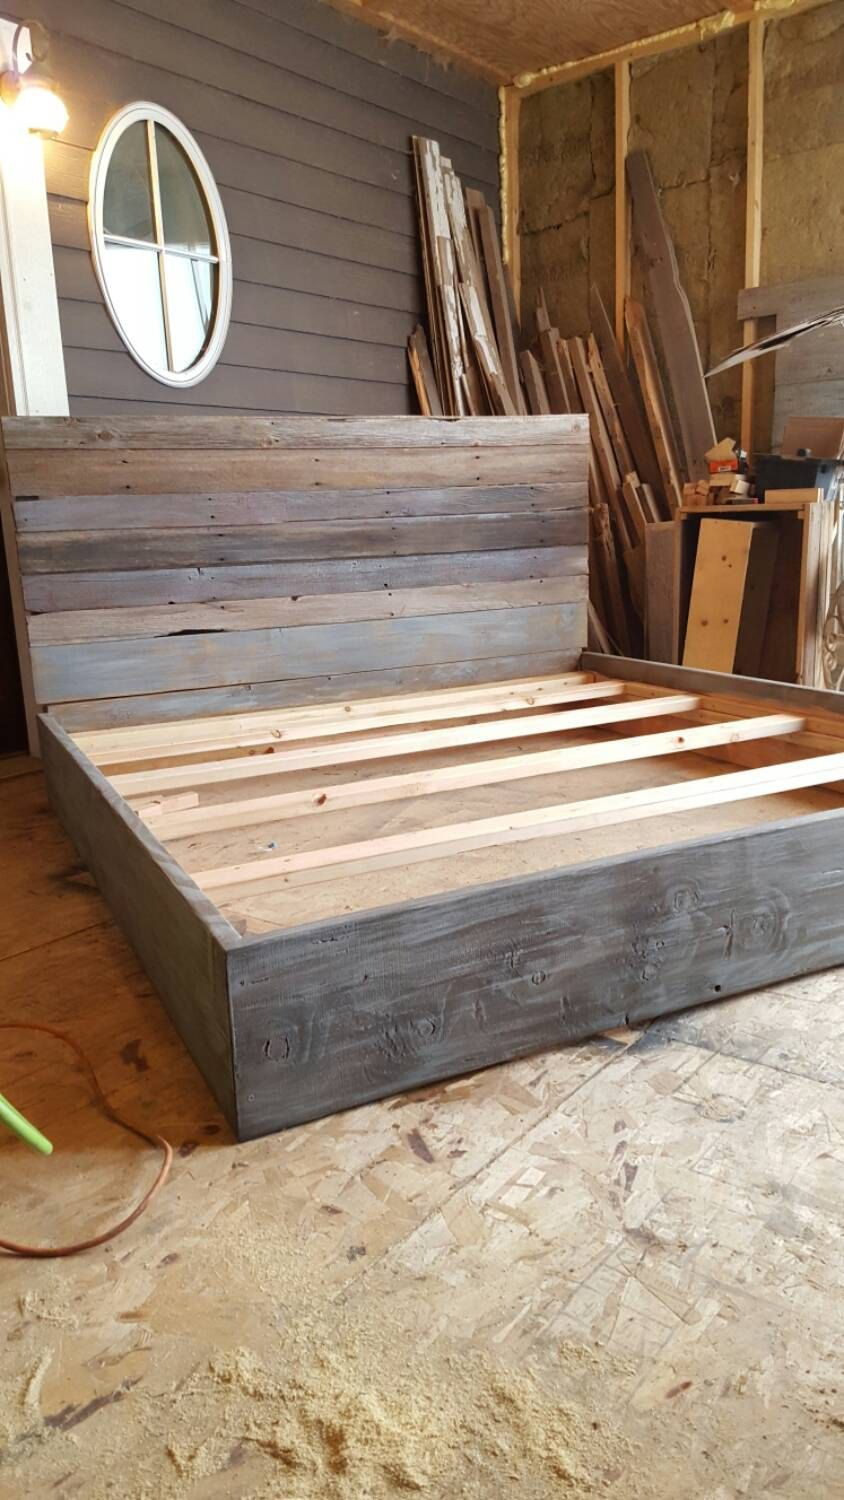 Michelle Grey Weathered Reclaimed recylced wood Headboard is part of Diy bed - flush mount is my suggested method and is available in 30  and 40  height Legs option adds a fixed 18  to the headboard to stand on floor and lift beyond your mattress light assembly required(handheld drill required)